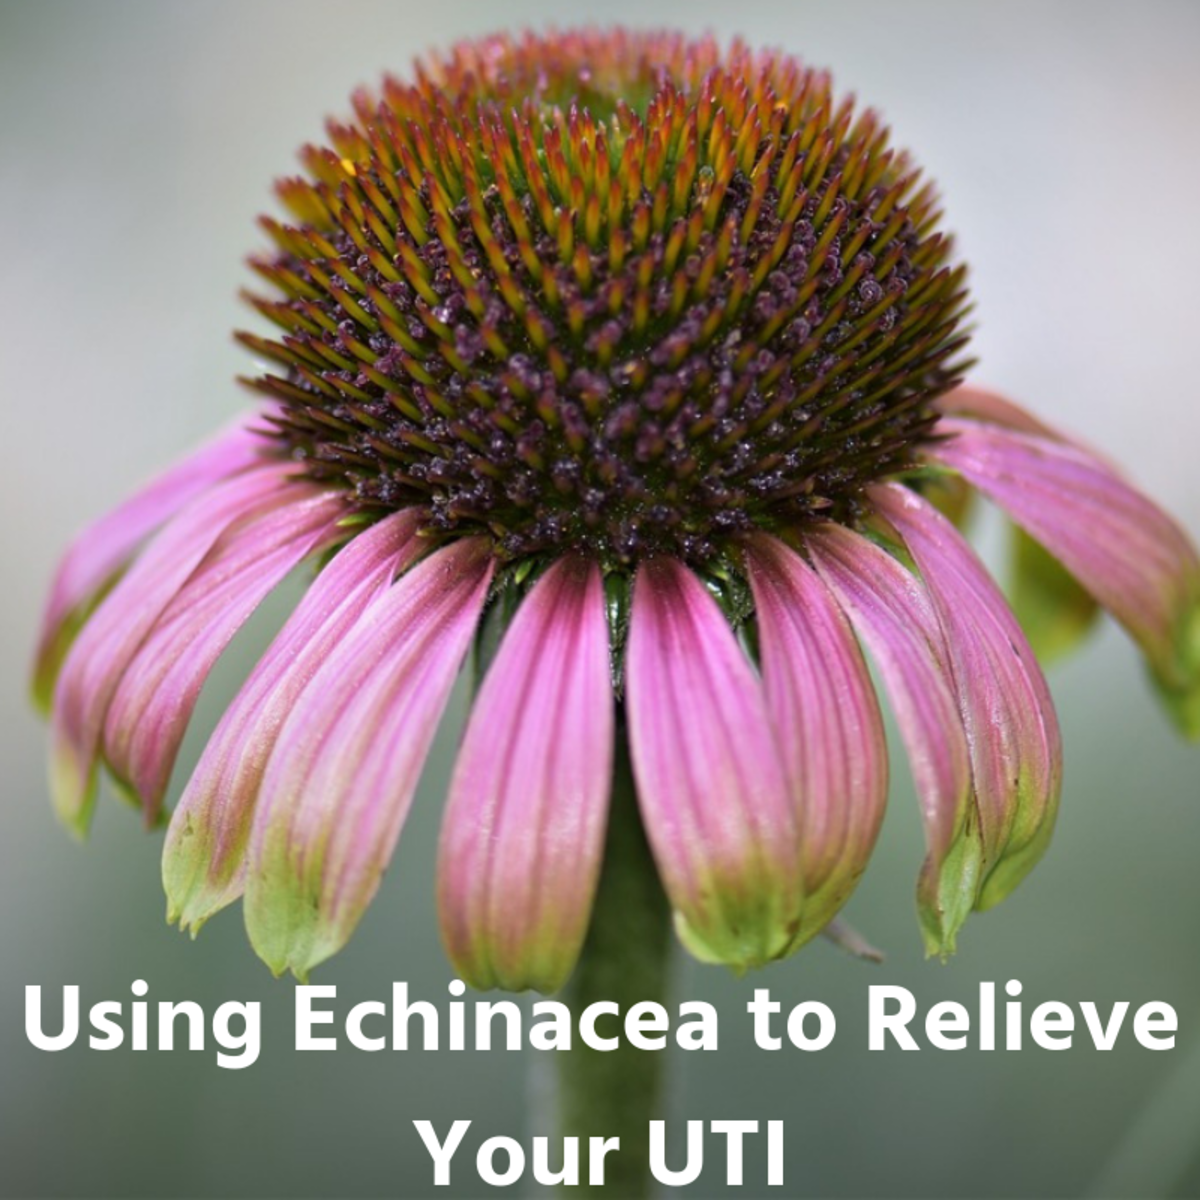 How to Relieve a Urinary Tract Infection (UTI) With Echinacea